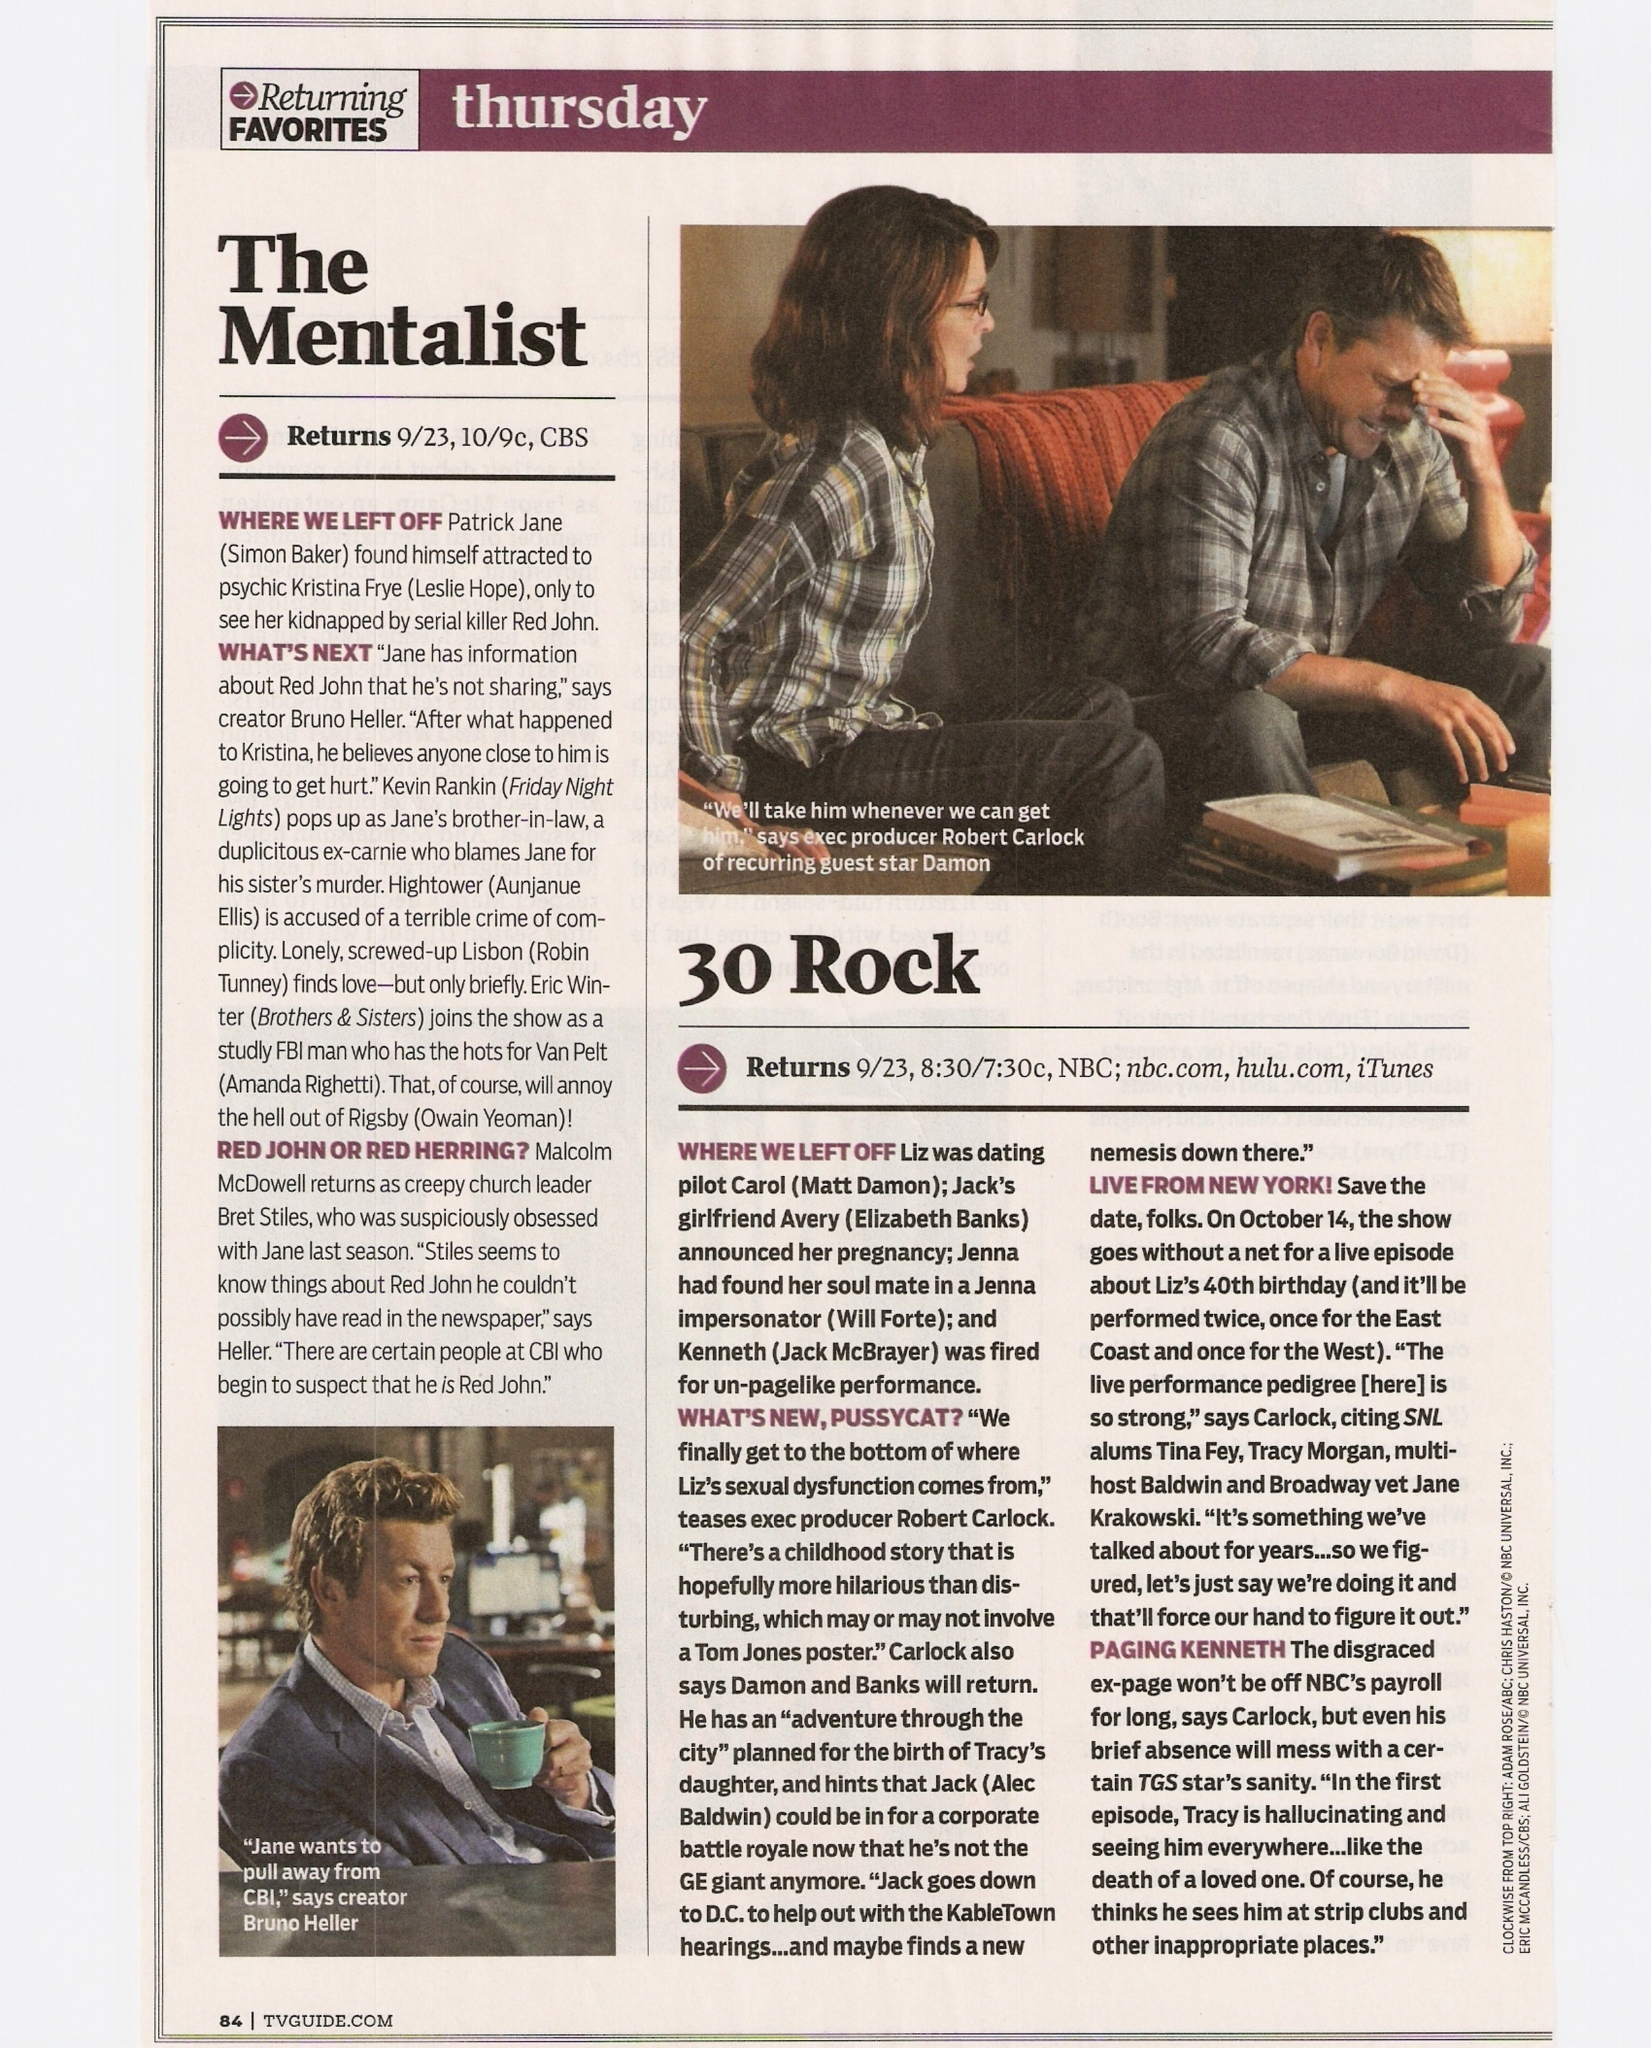 SPOILER : Tv Shows Returning favorit - The Mentalist (scan)